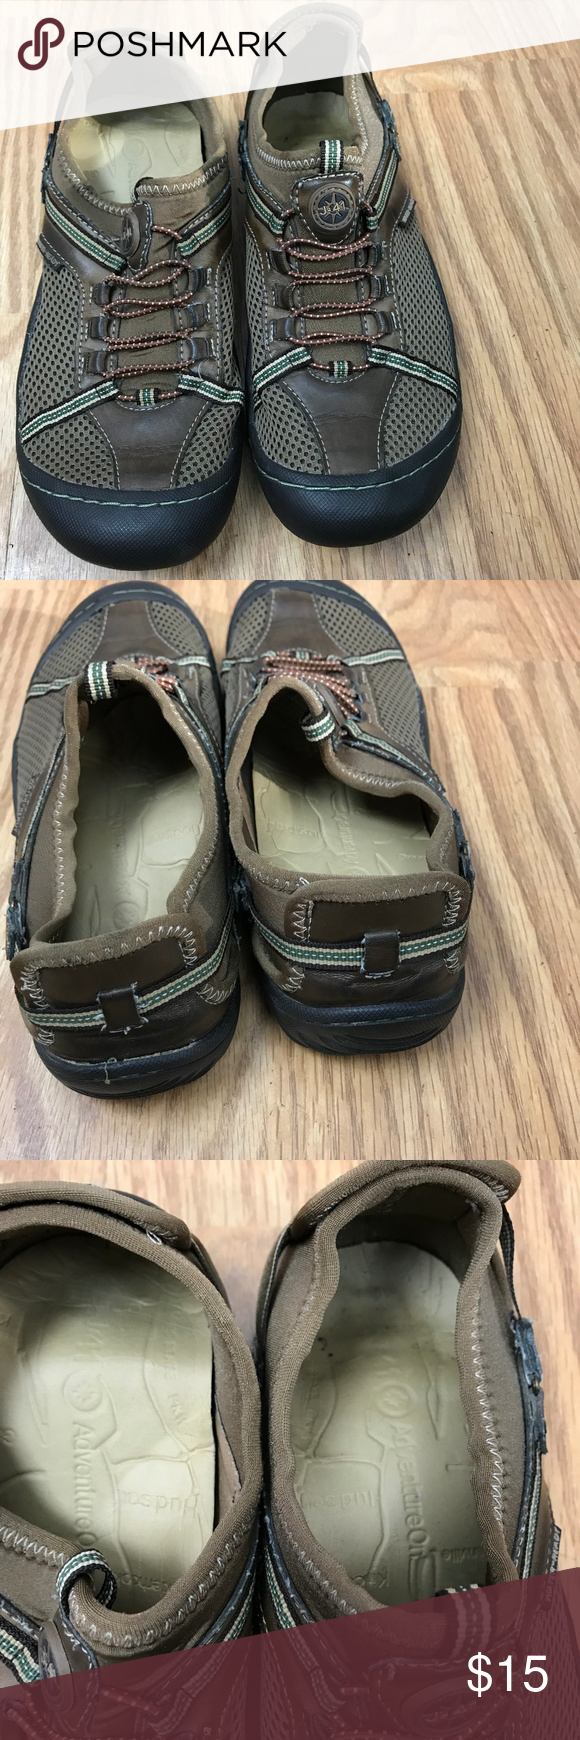 f19e79c6f28323 Jeep J-41 Tahoe Shoes Womens 8M Brown Vegan Water Jeep J-41 Tahoe Shoes  Womens 8M Brown Vegan Water Ready Slip On Sport. Great Pre-Owned condition.